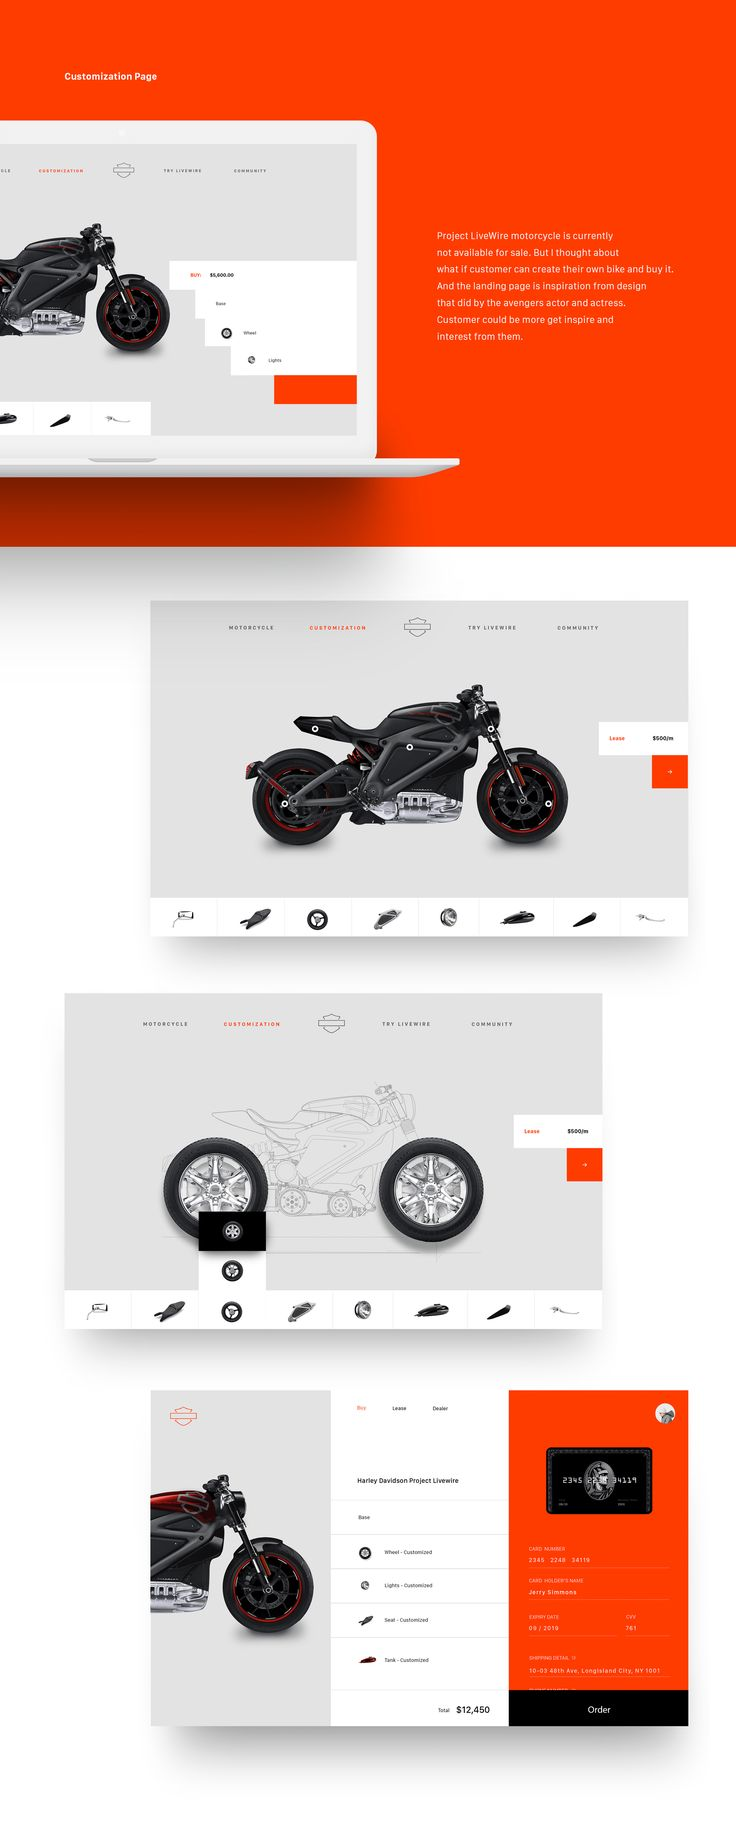 Harley Davidson - Project Livewire Website Redesign by Yeun Su Chu Chu